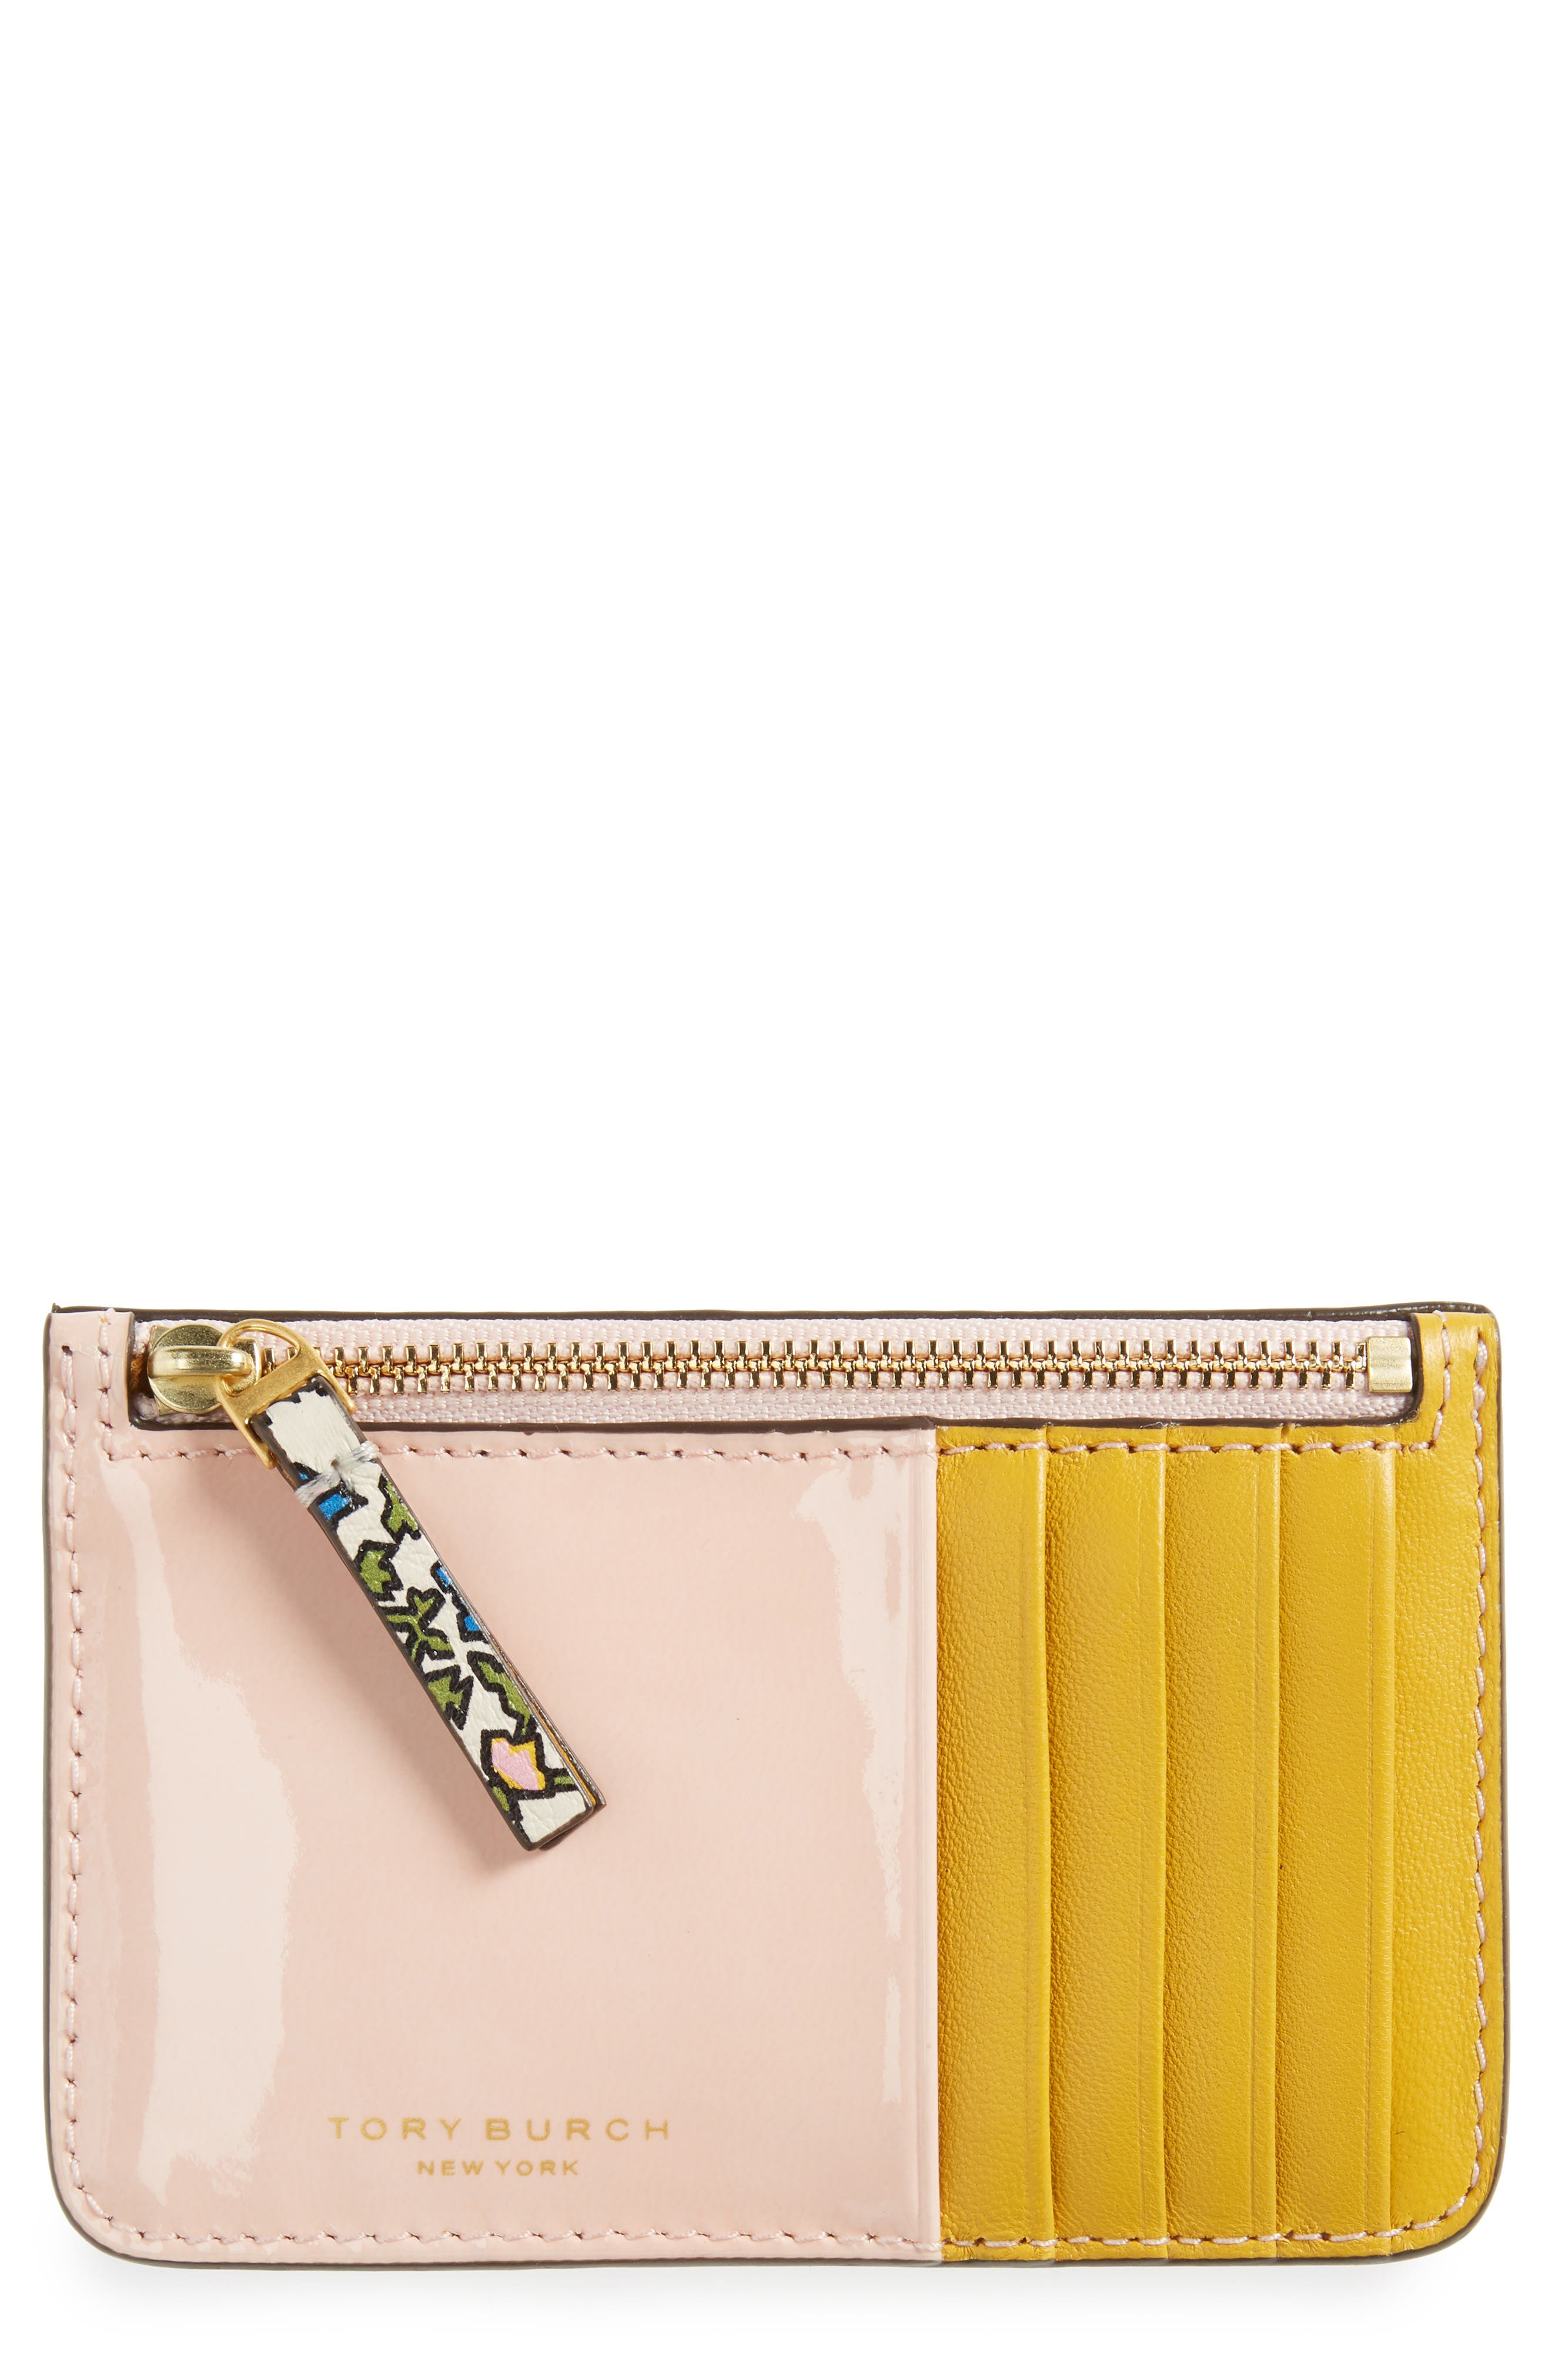 Colorblock Leather Card Case,                             Main thumbnail 1, color,                             Ivory Wild Pansy